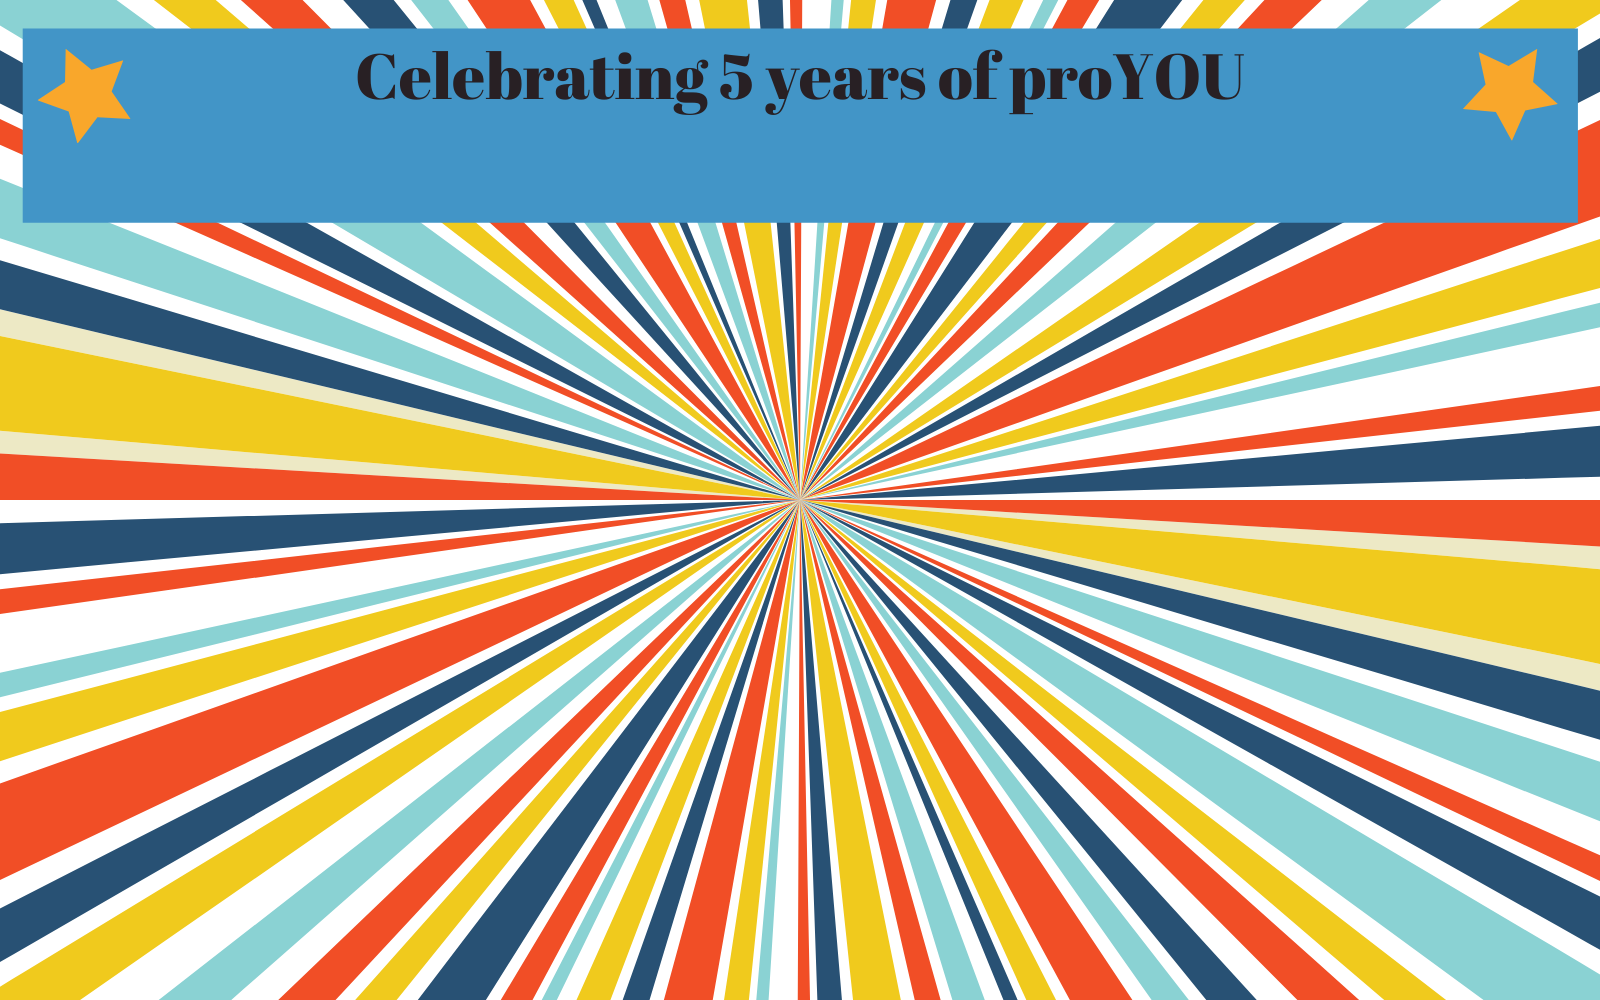 The Greatest PRO SHOW celebrating 5 years of proYOU image